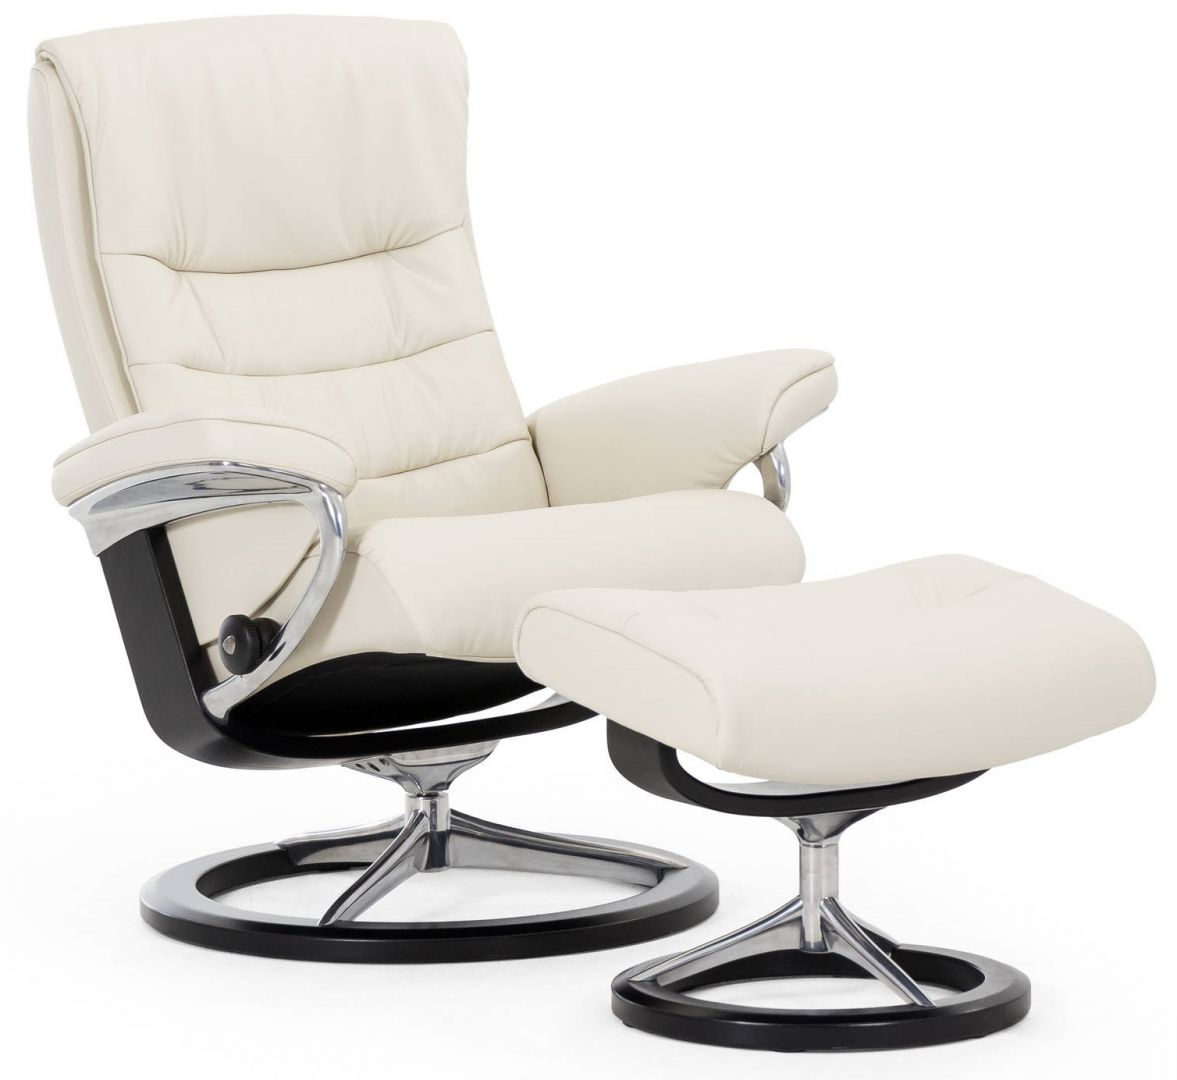 Stressless Chair Prices Stressless Nordic Chair And Ottoman Signature Base The